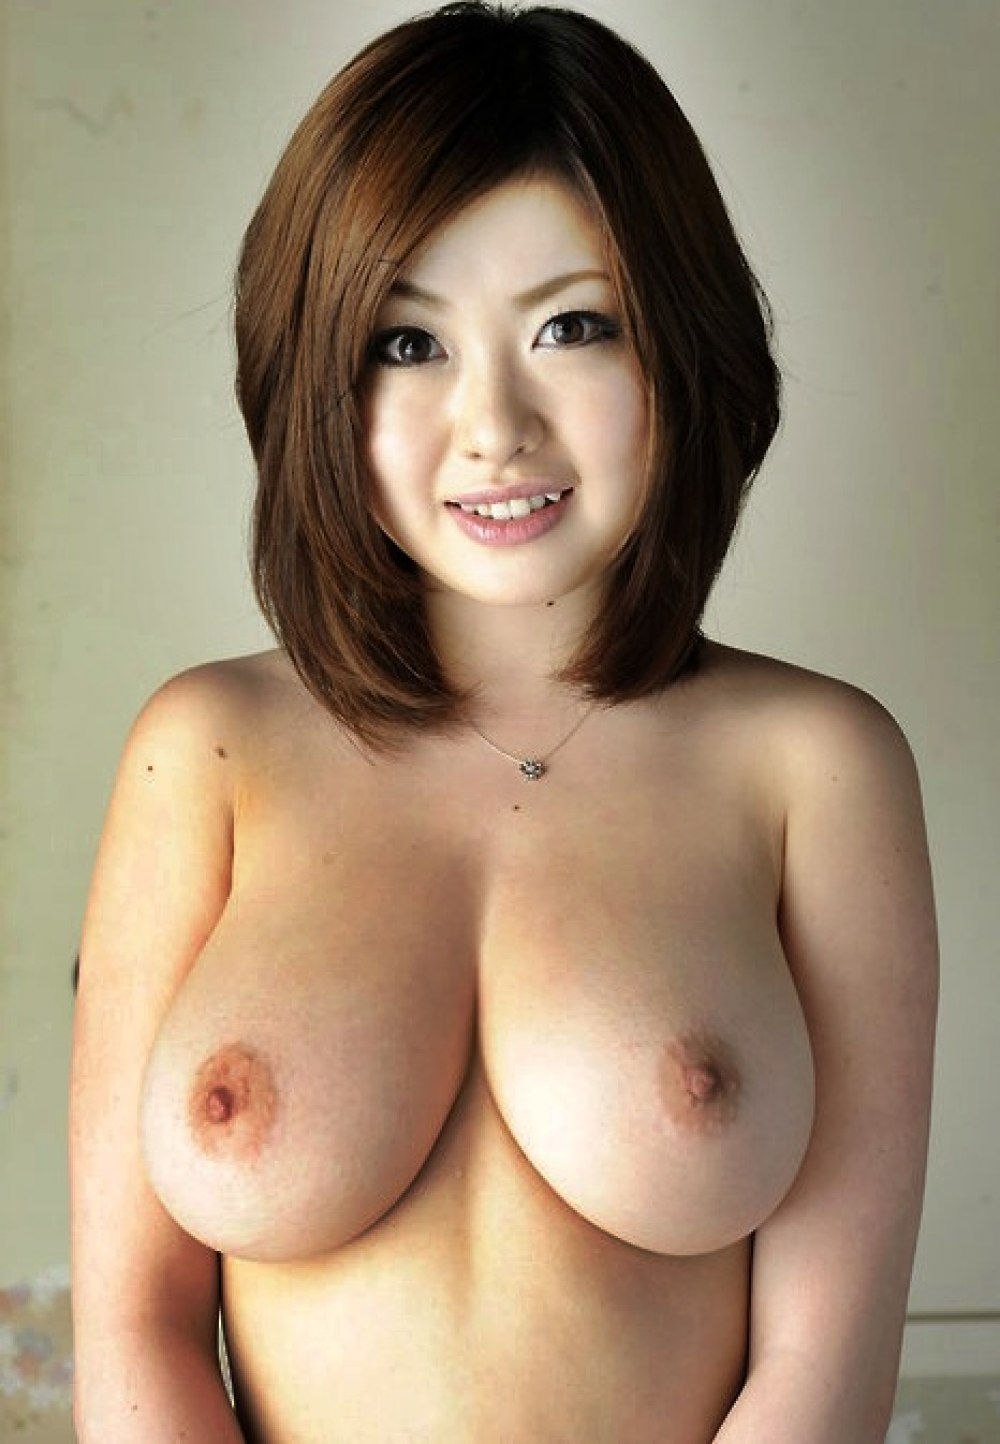 Was under Very nice japanese girls nude boobs pictures excited